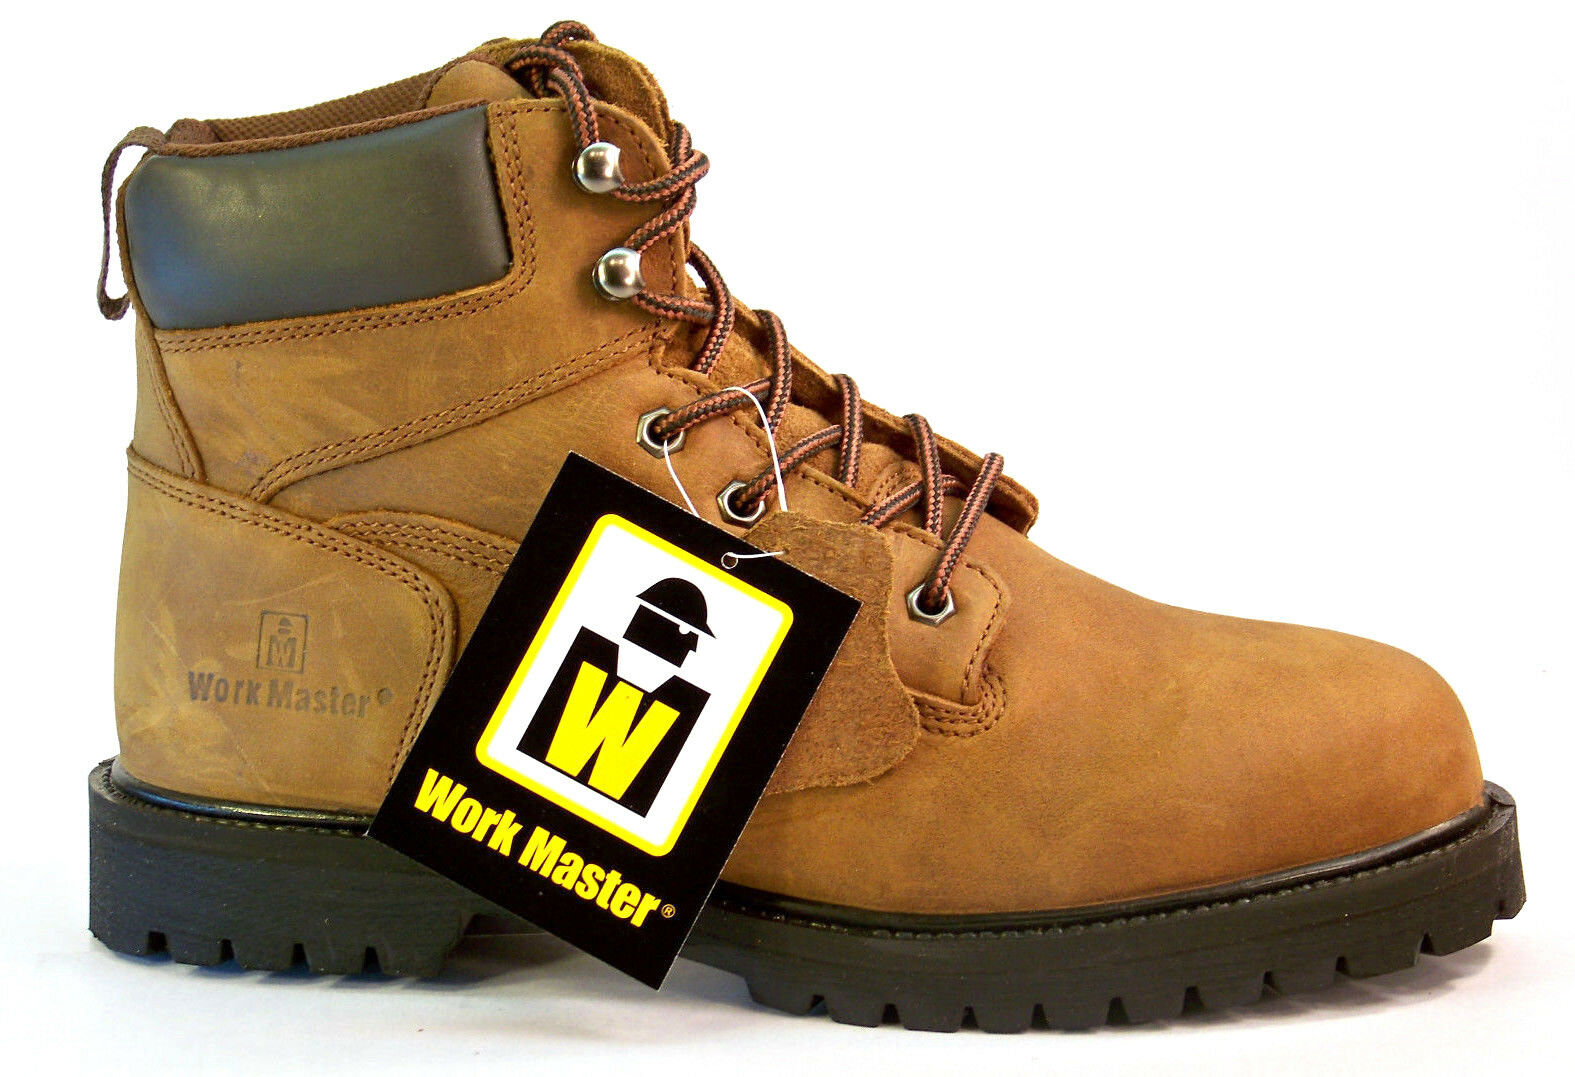 WORK MASTER G-022504-1C Work Boots, Plain Toe, 6 Inch, Brown, Size 11.5 M